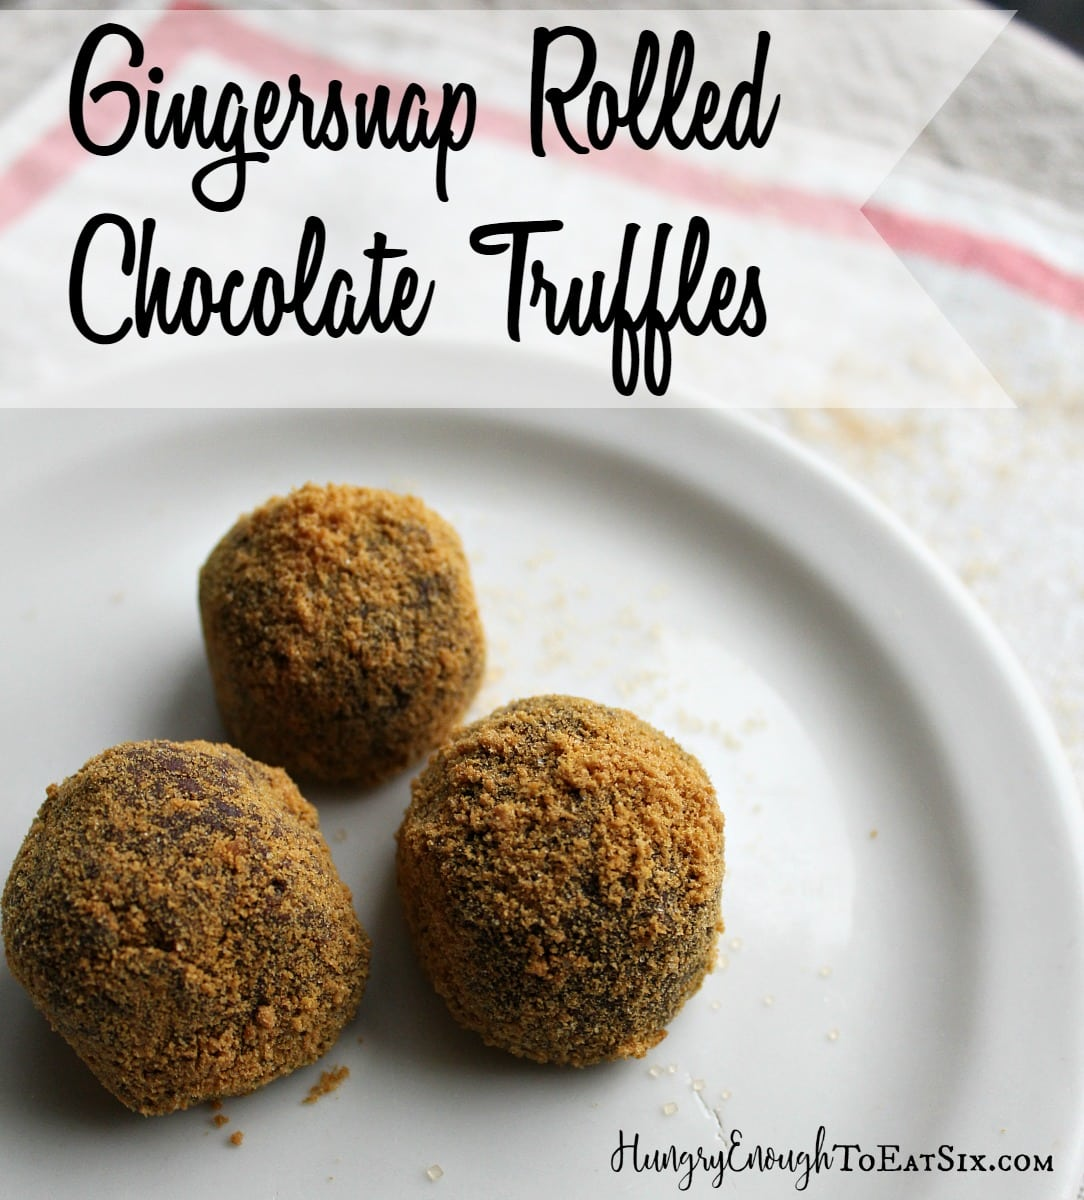 Rich, dark truffles are coated in fine gingersnap cookies crumbs. It's a sumptuous treat!